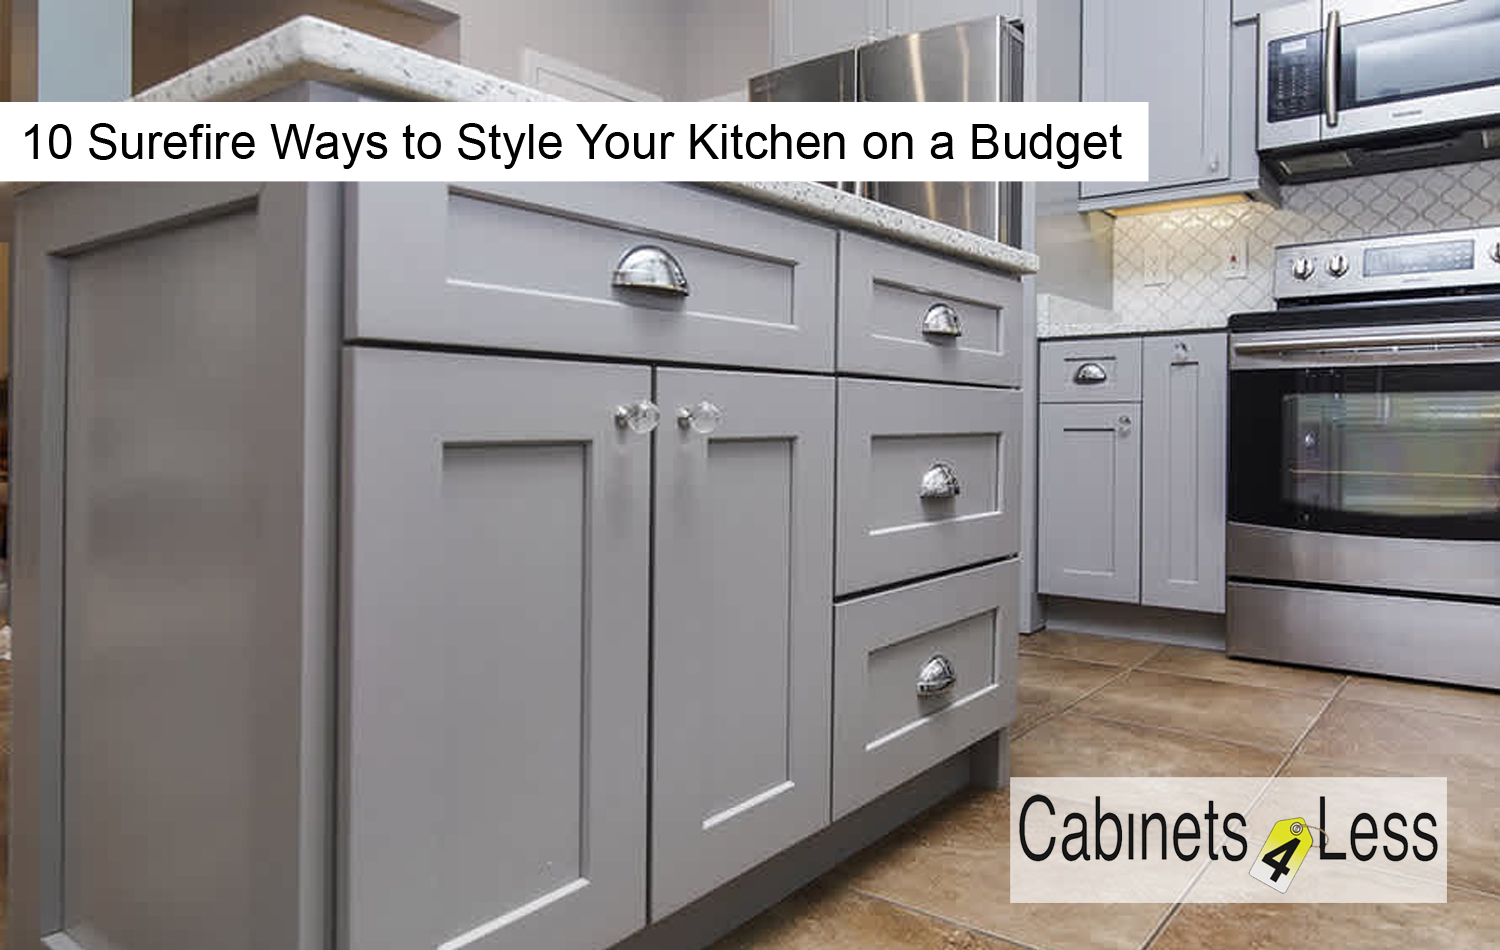 10 Surefire Ways to Style Your Kitchen on a Budget